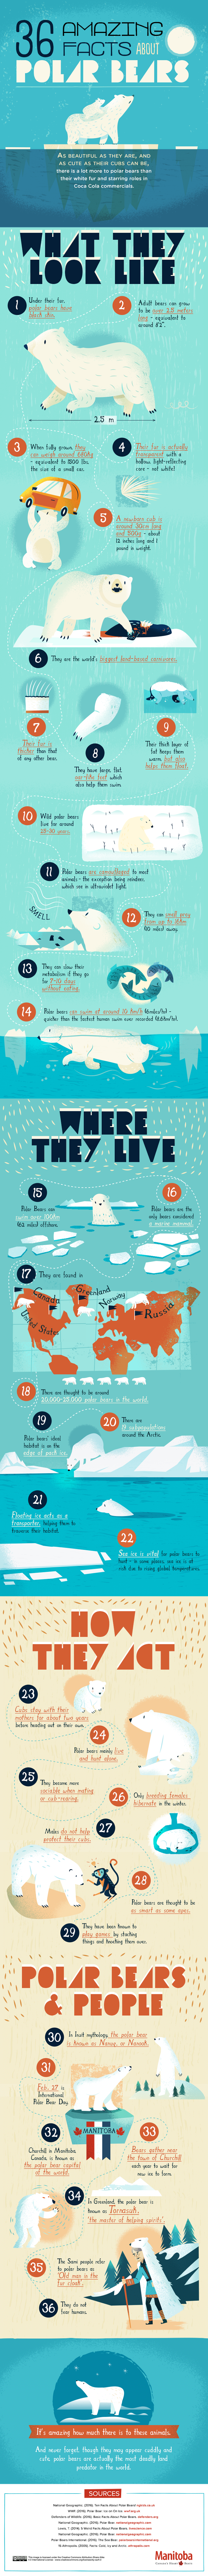 36 facts about polar bears